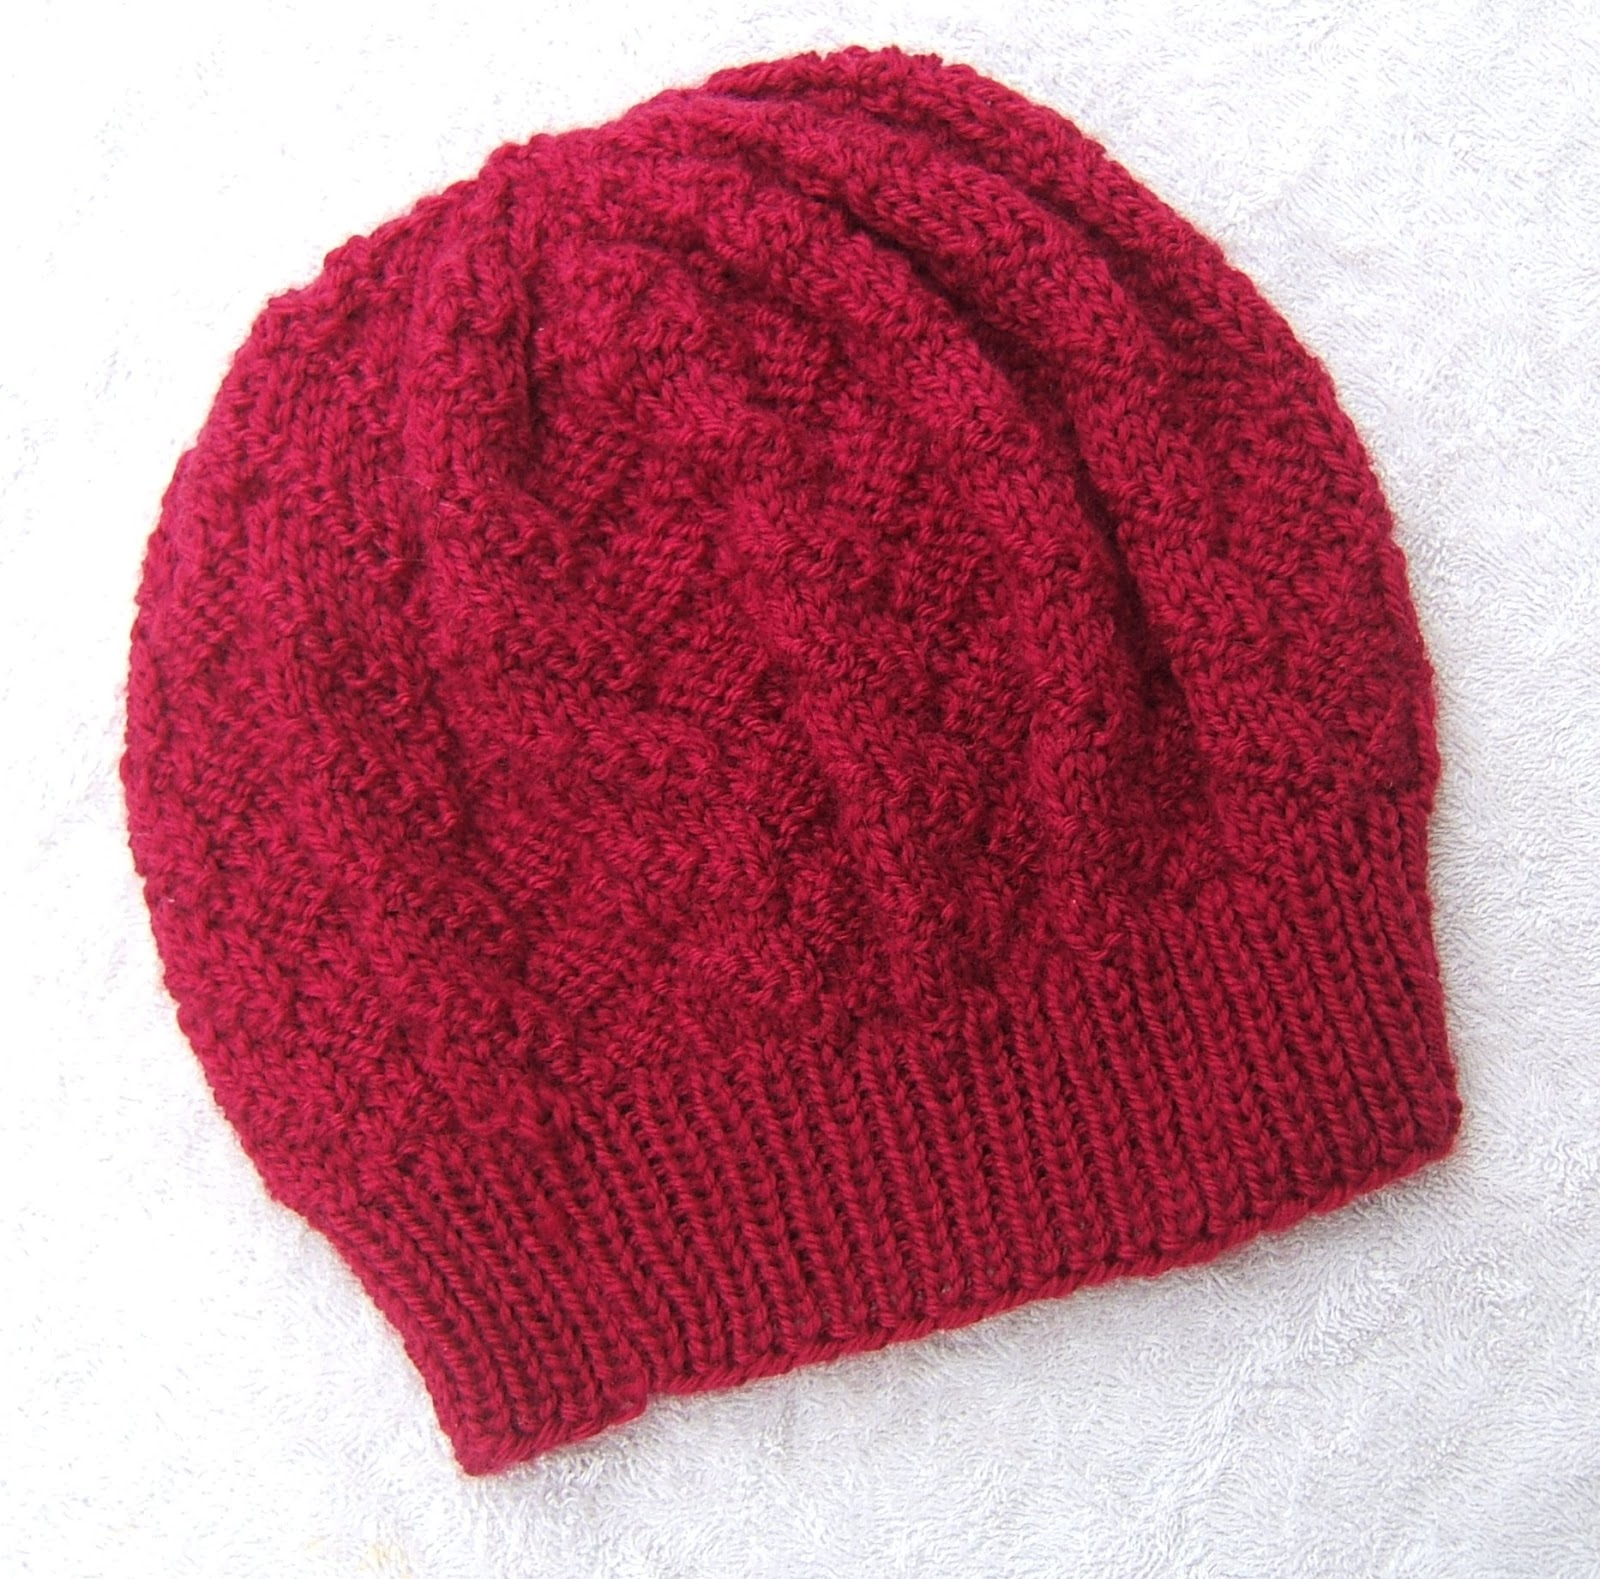 Knitting Hat Patterns Round Needles : aussie knitting threads: October 2012